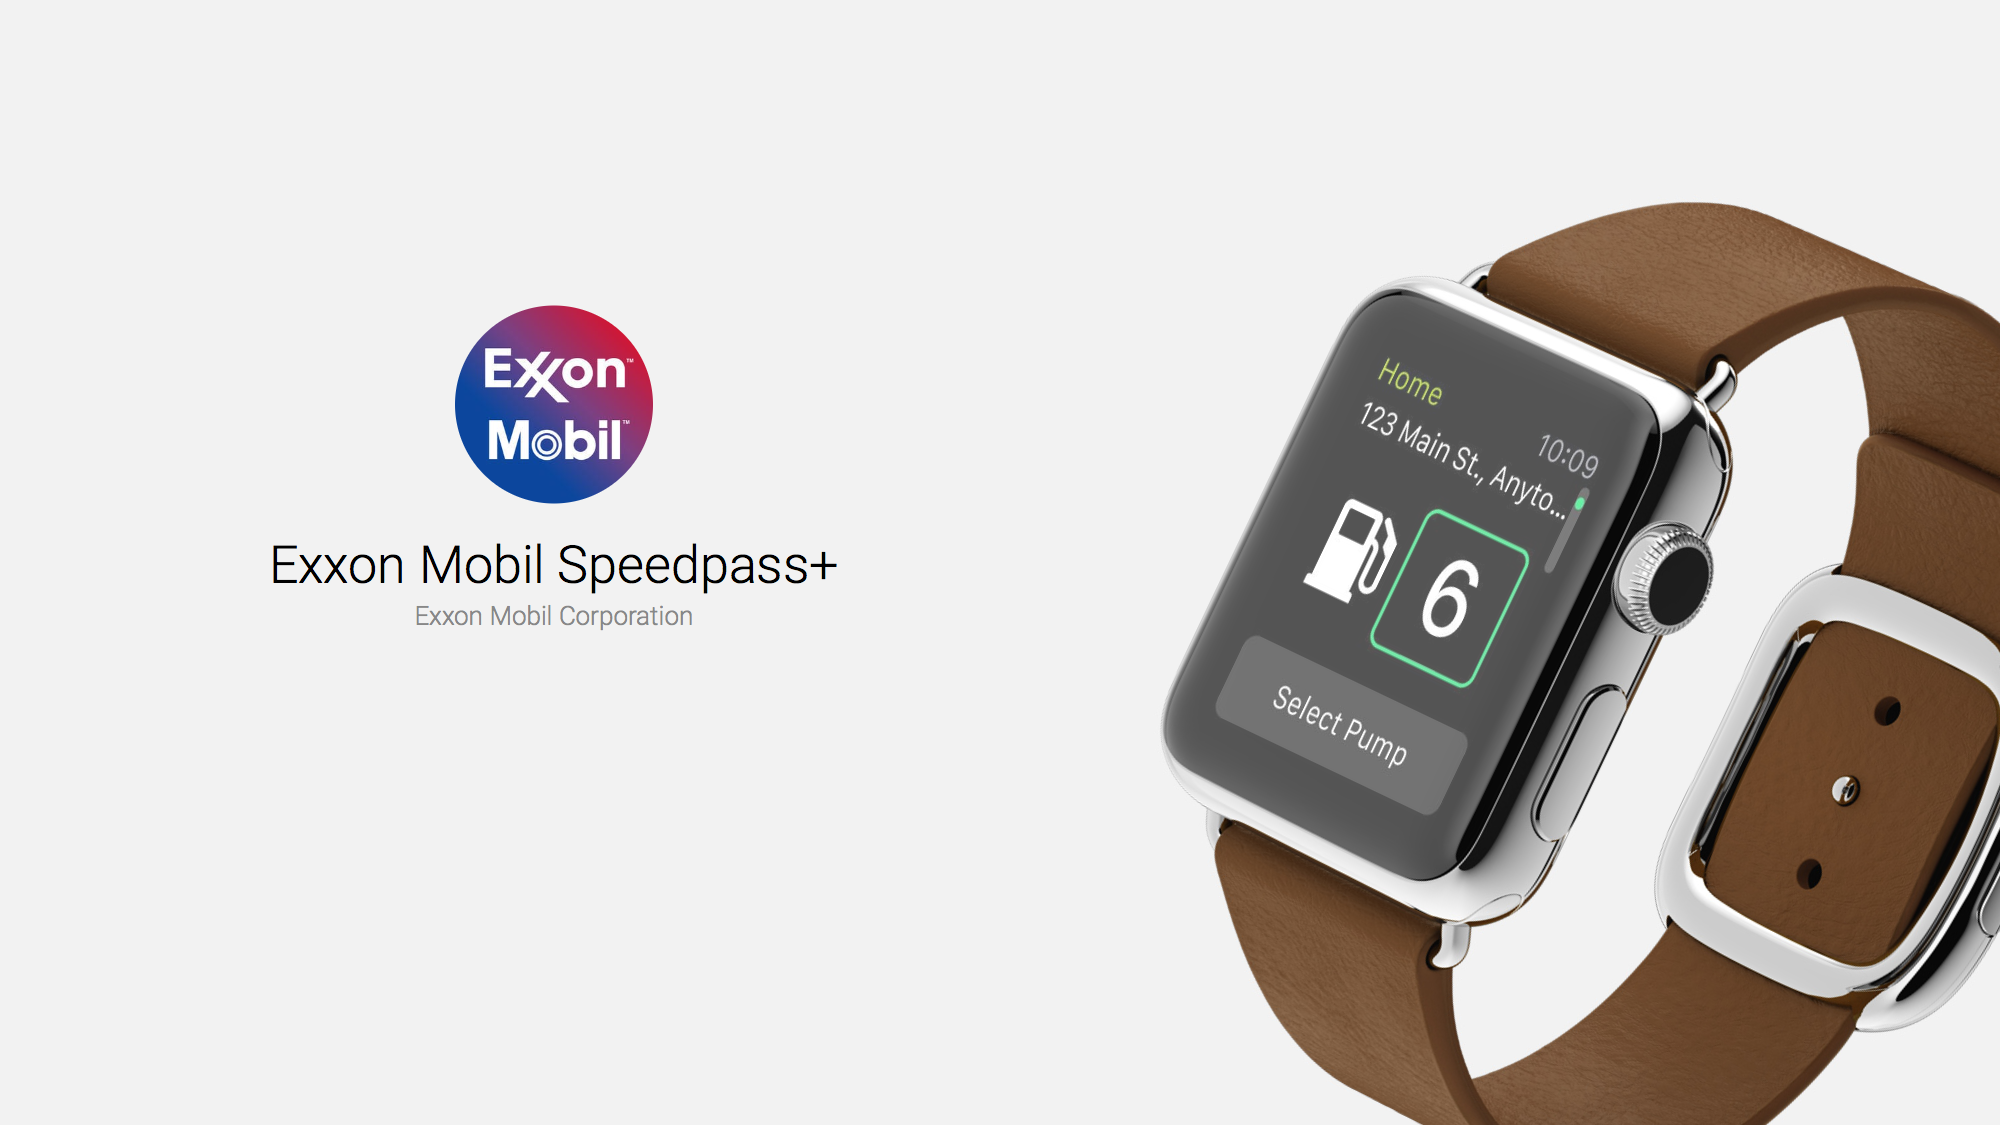 Exxon Mobil Speedpass+ Lets You Pay at the Pump